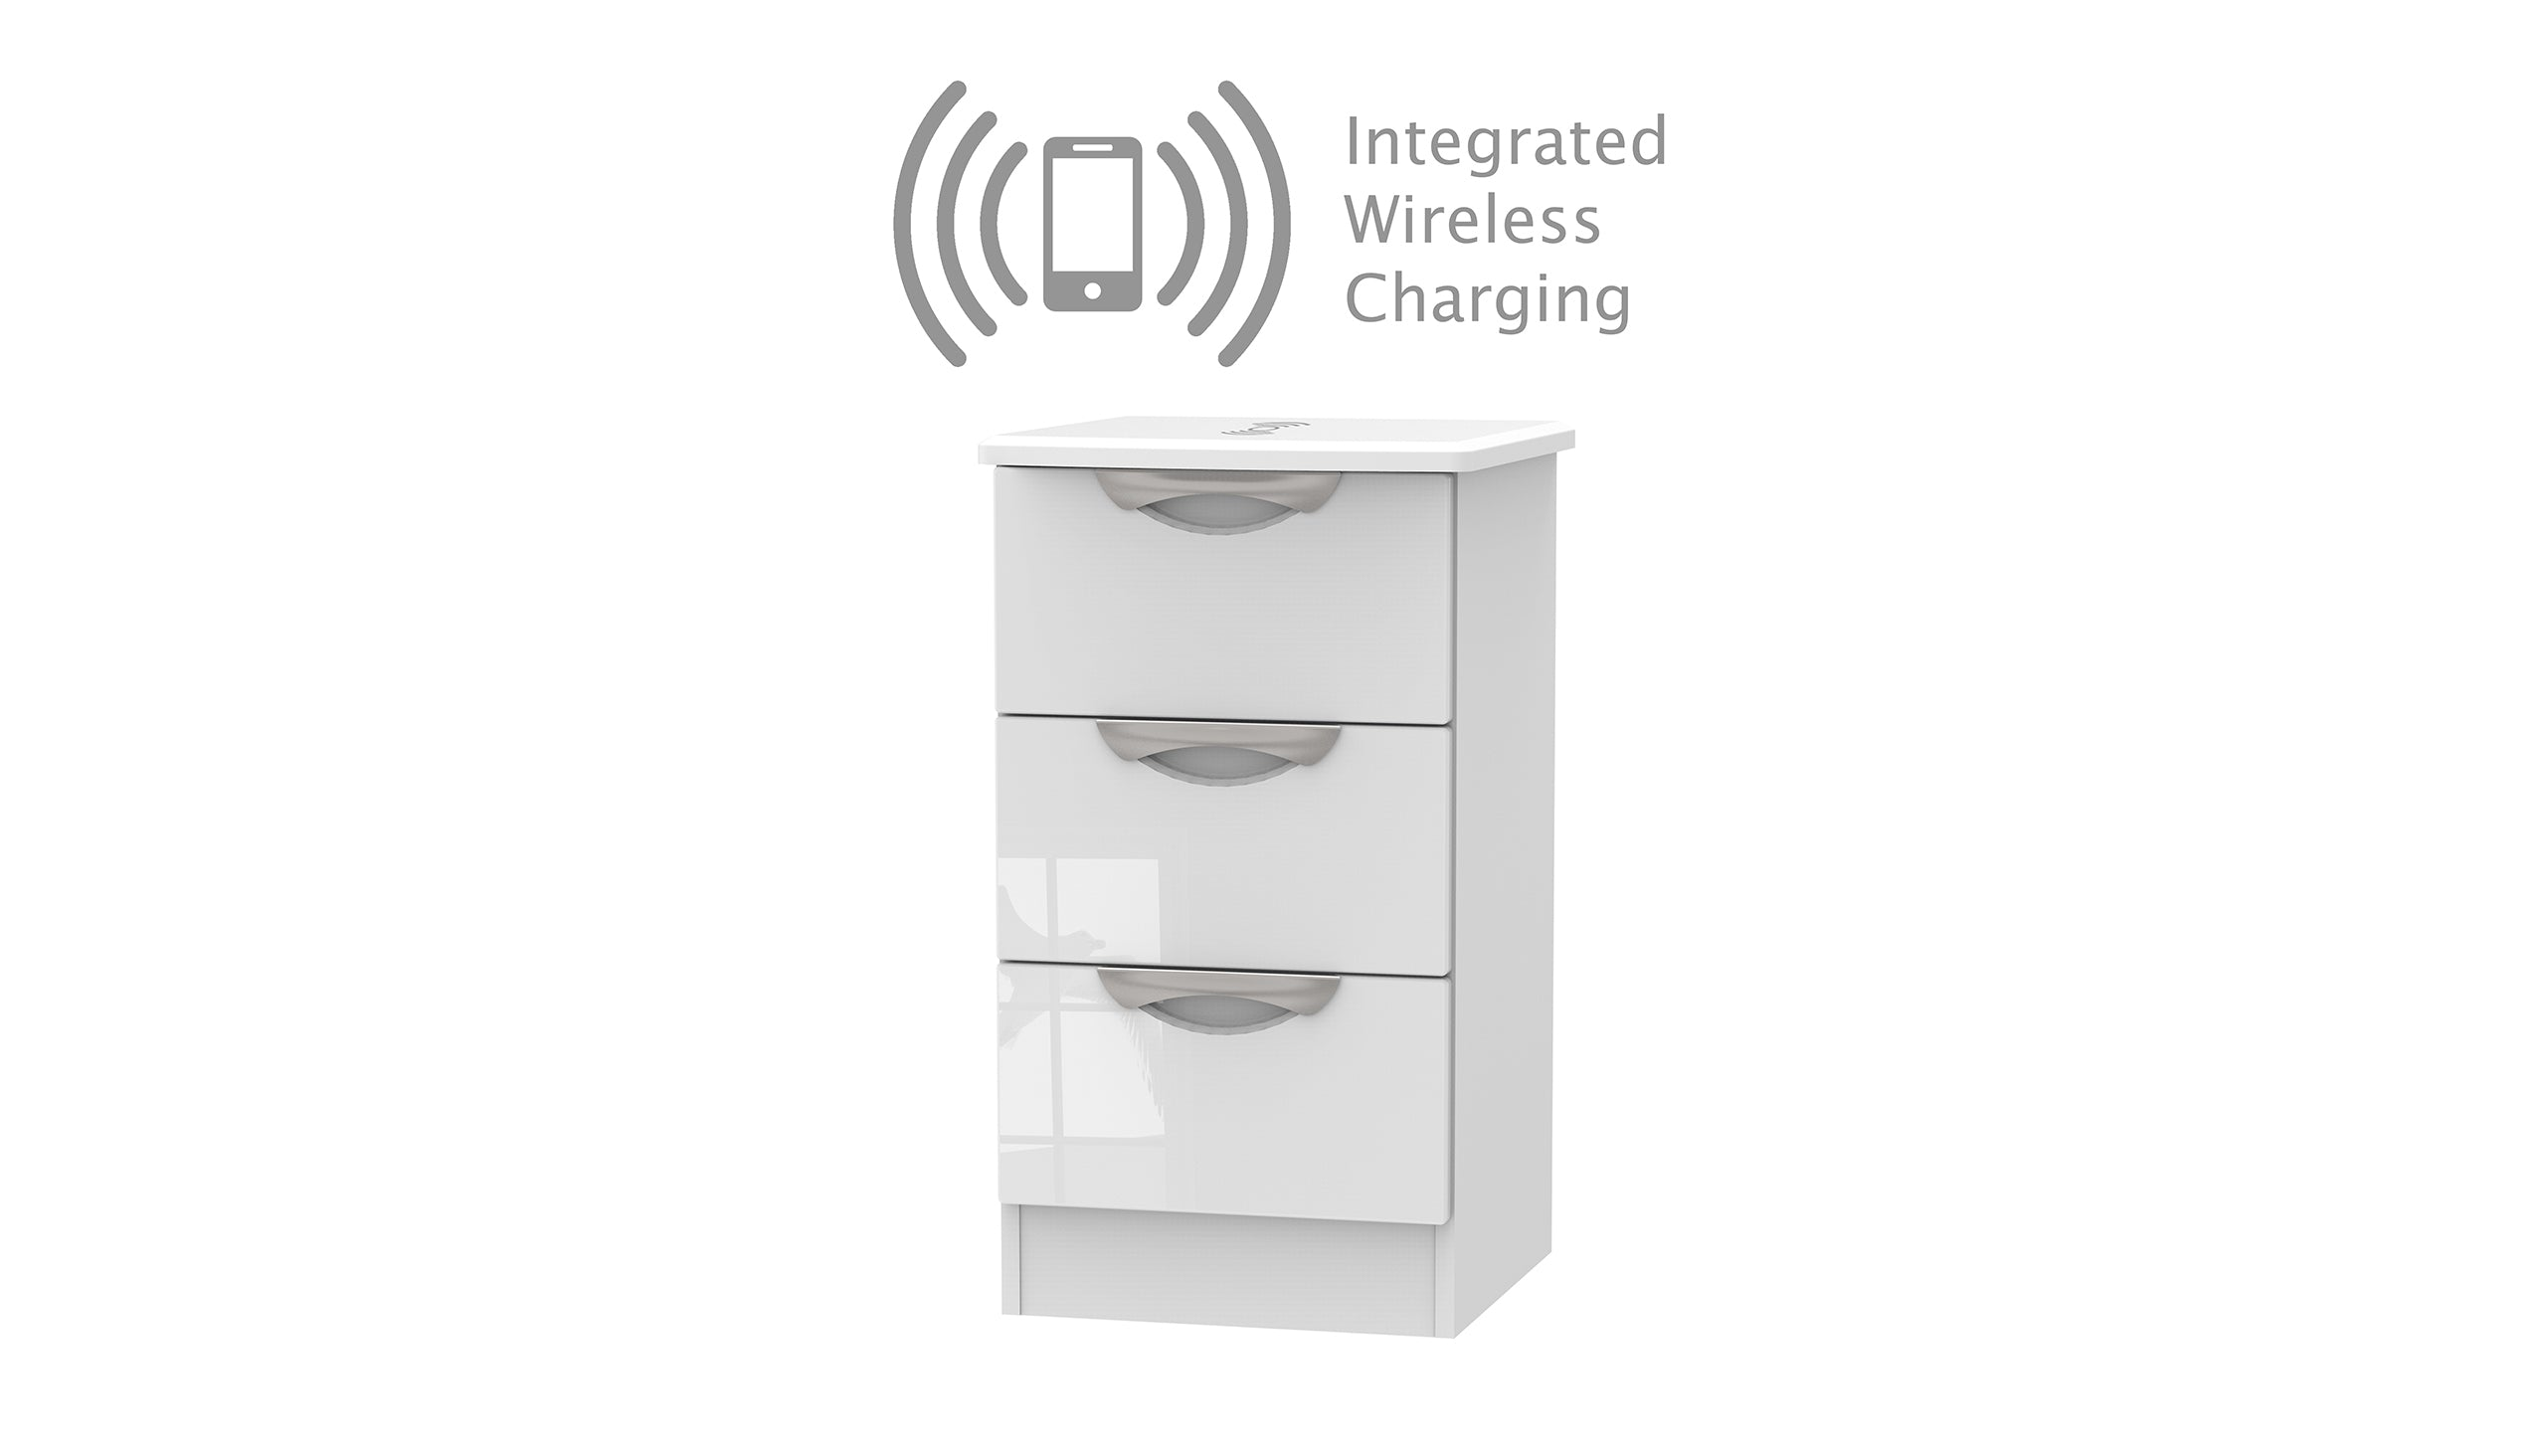 Moda 3 Drawer Bedside Chest with Wireless Charger - AHF Furniture & Carpets